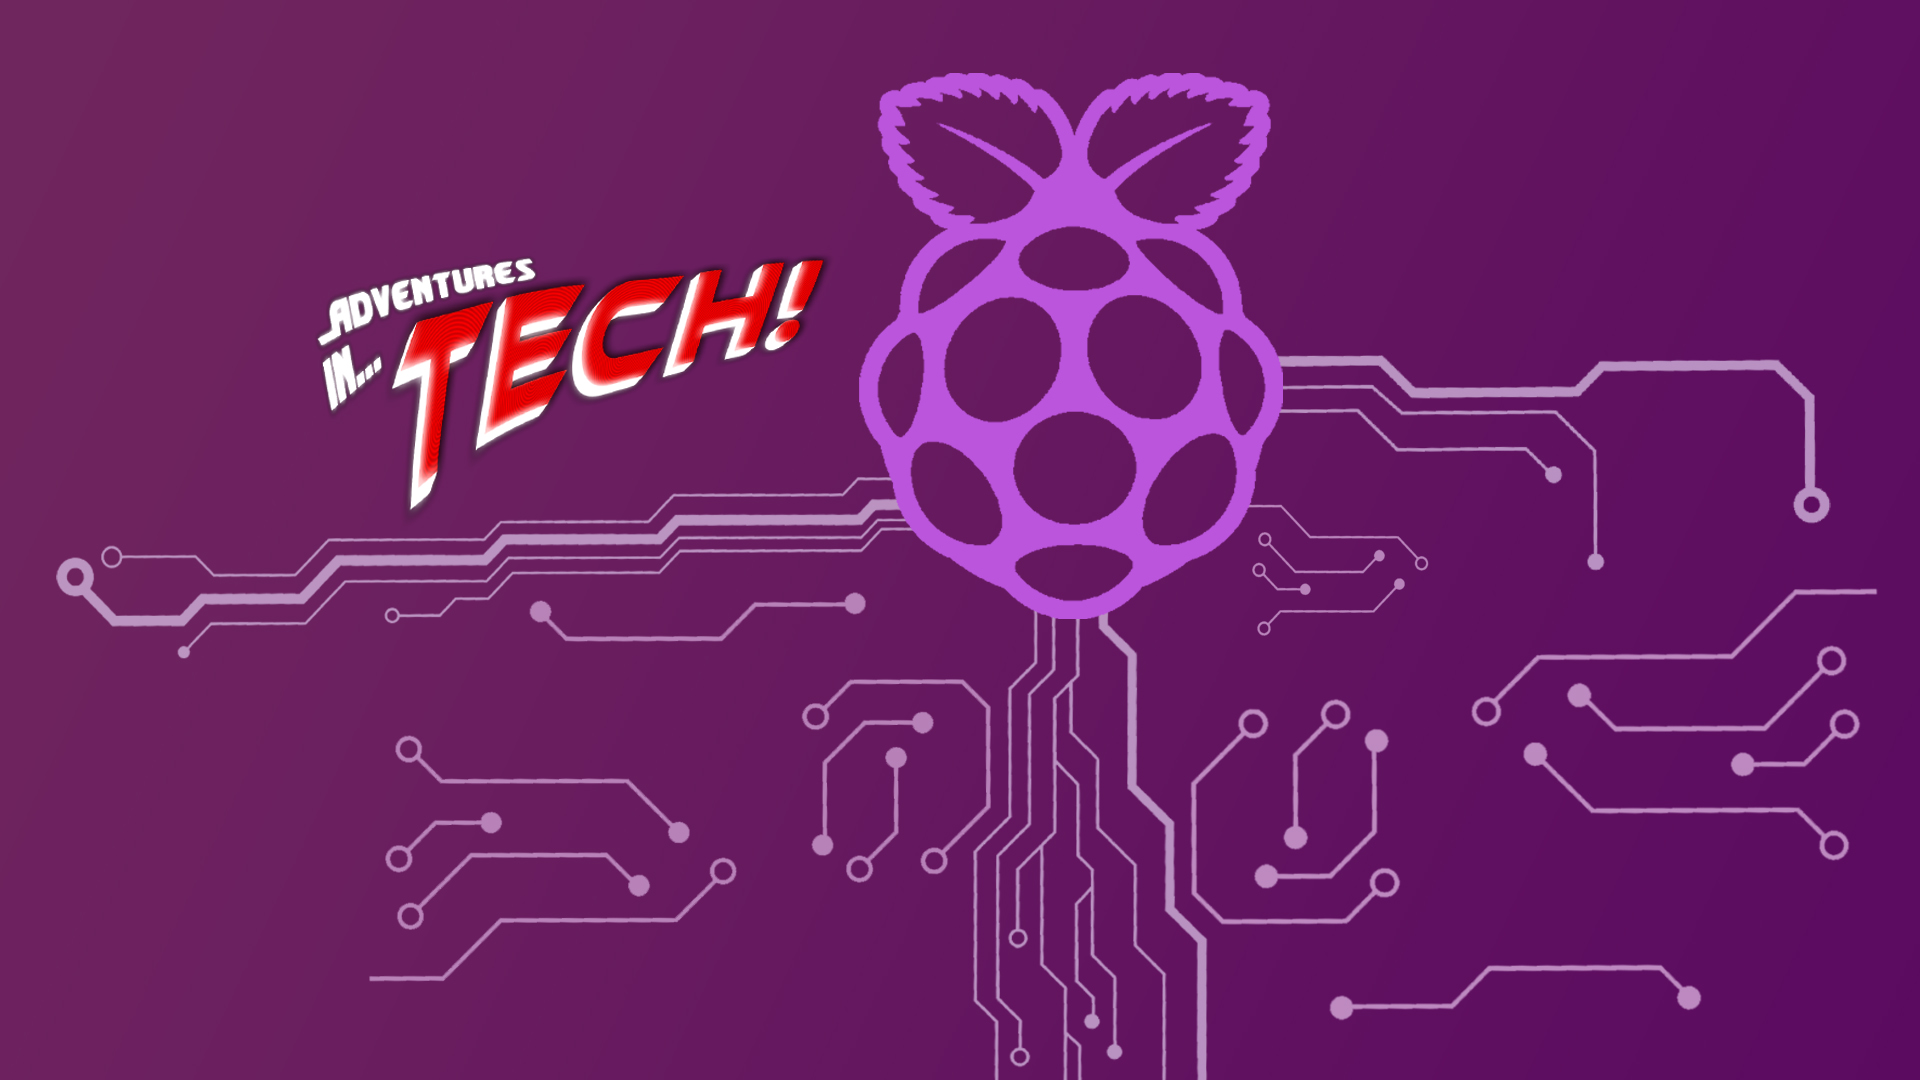 Video: The making of Raspberry Pi